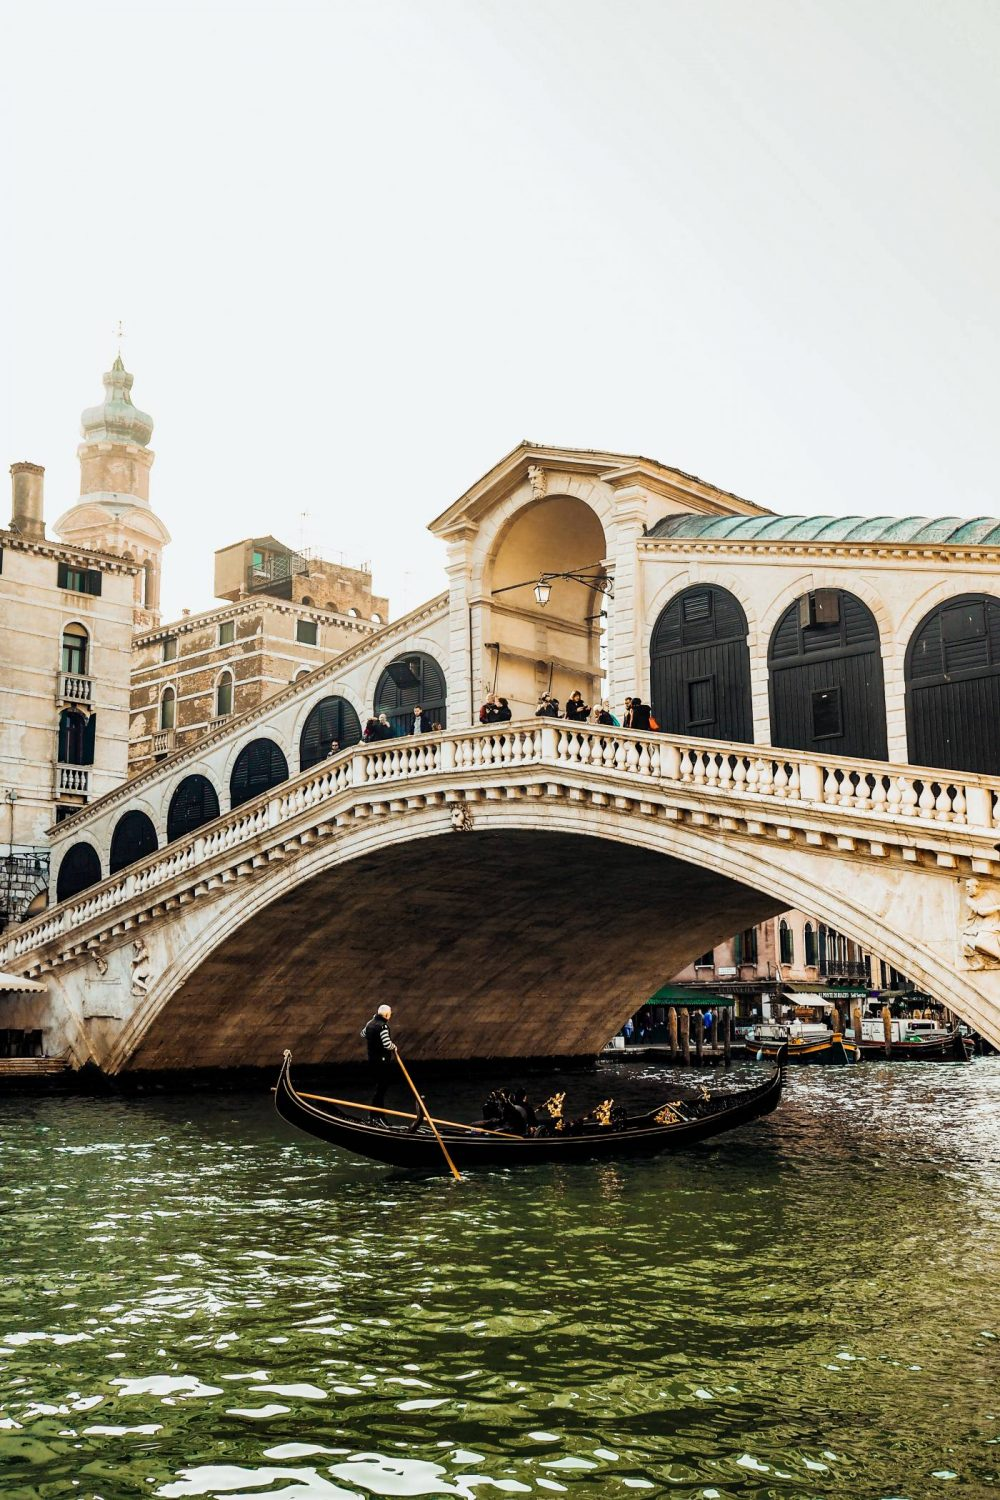 The Rialto Bridge and Gondolier in Venice